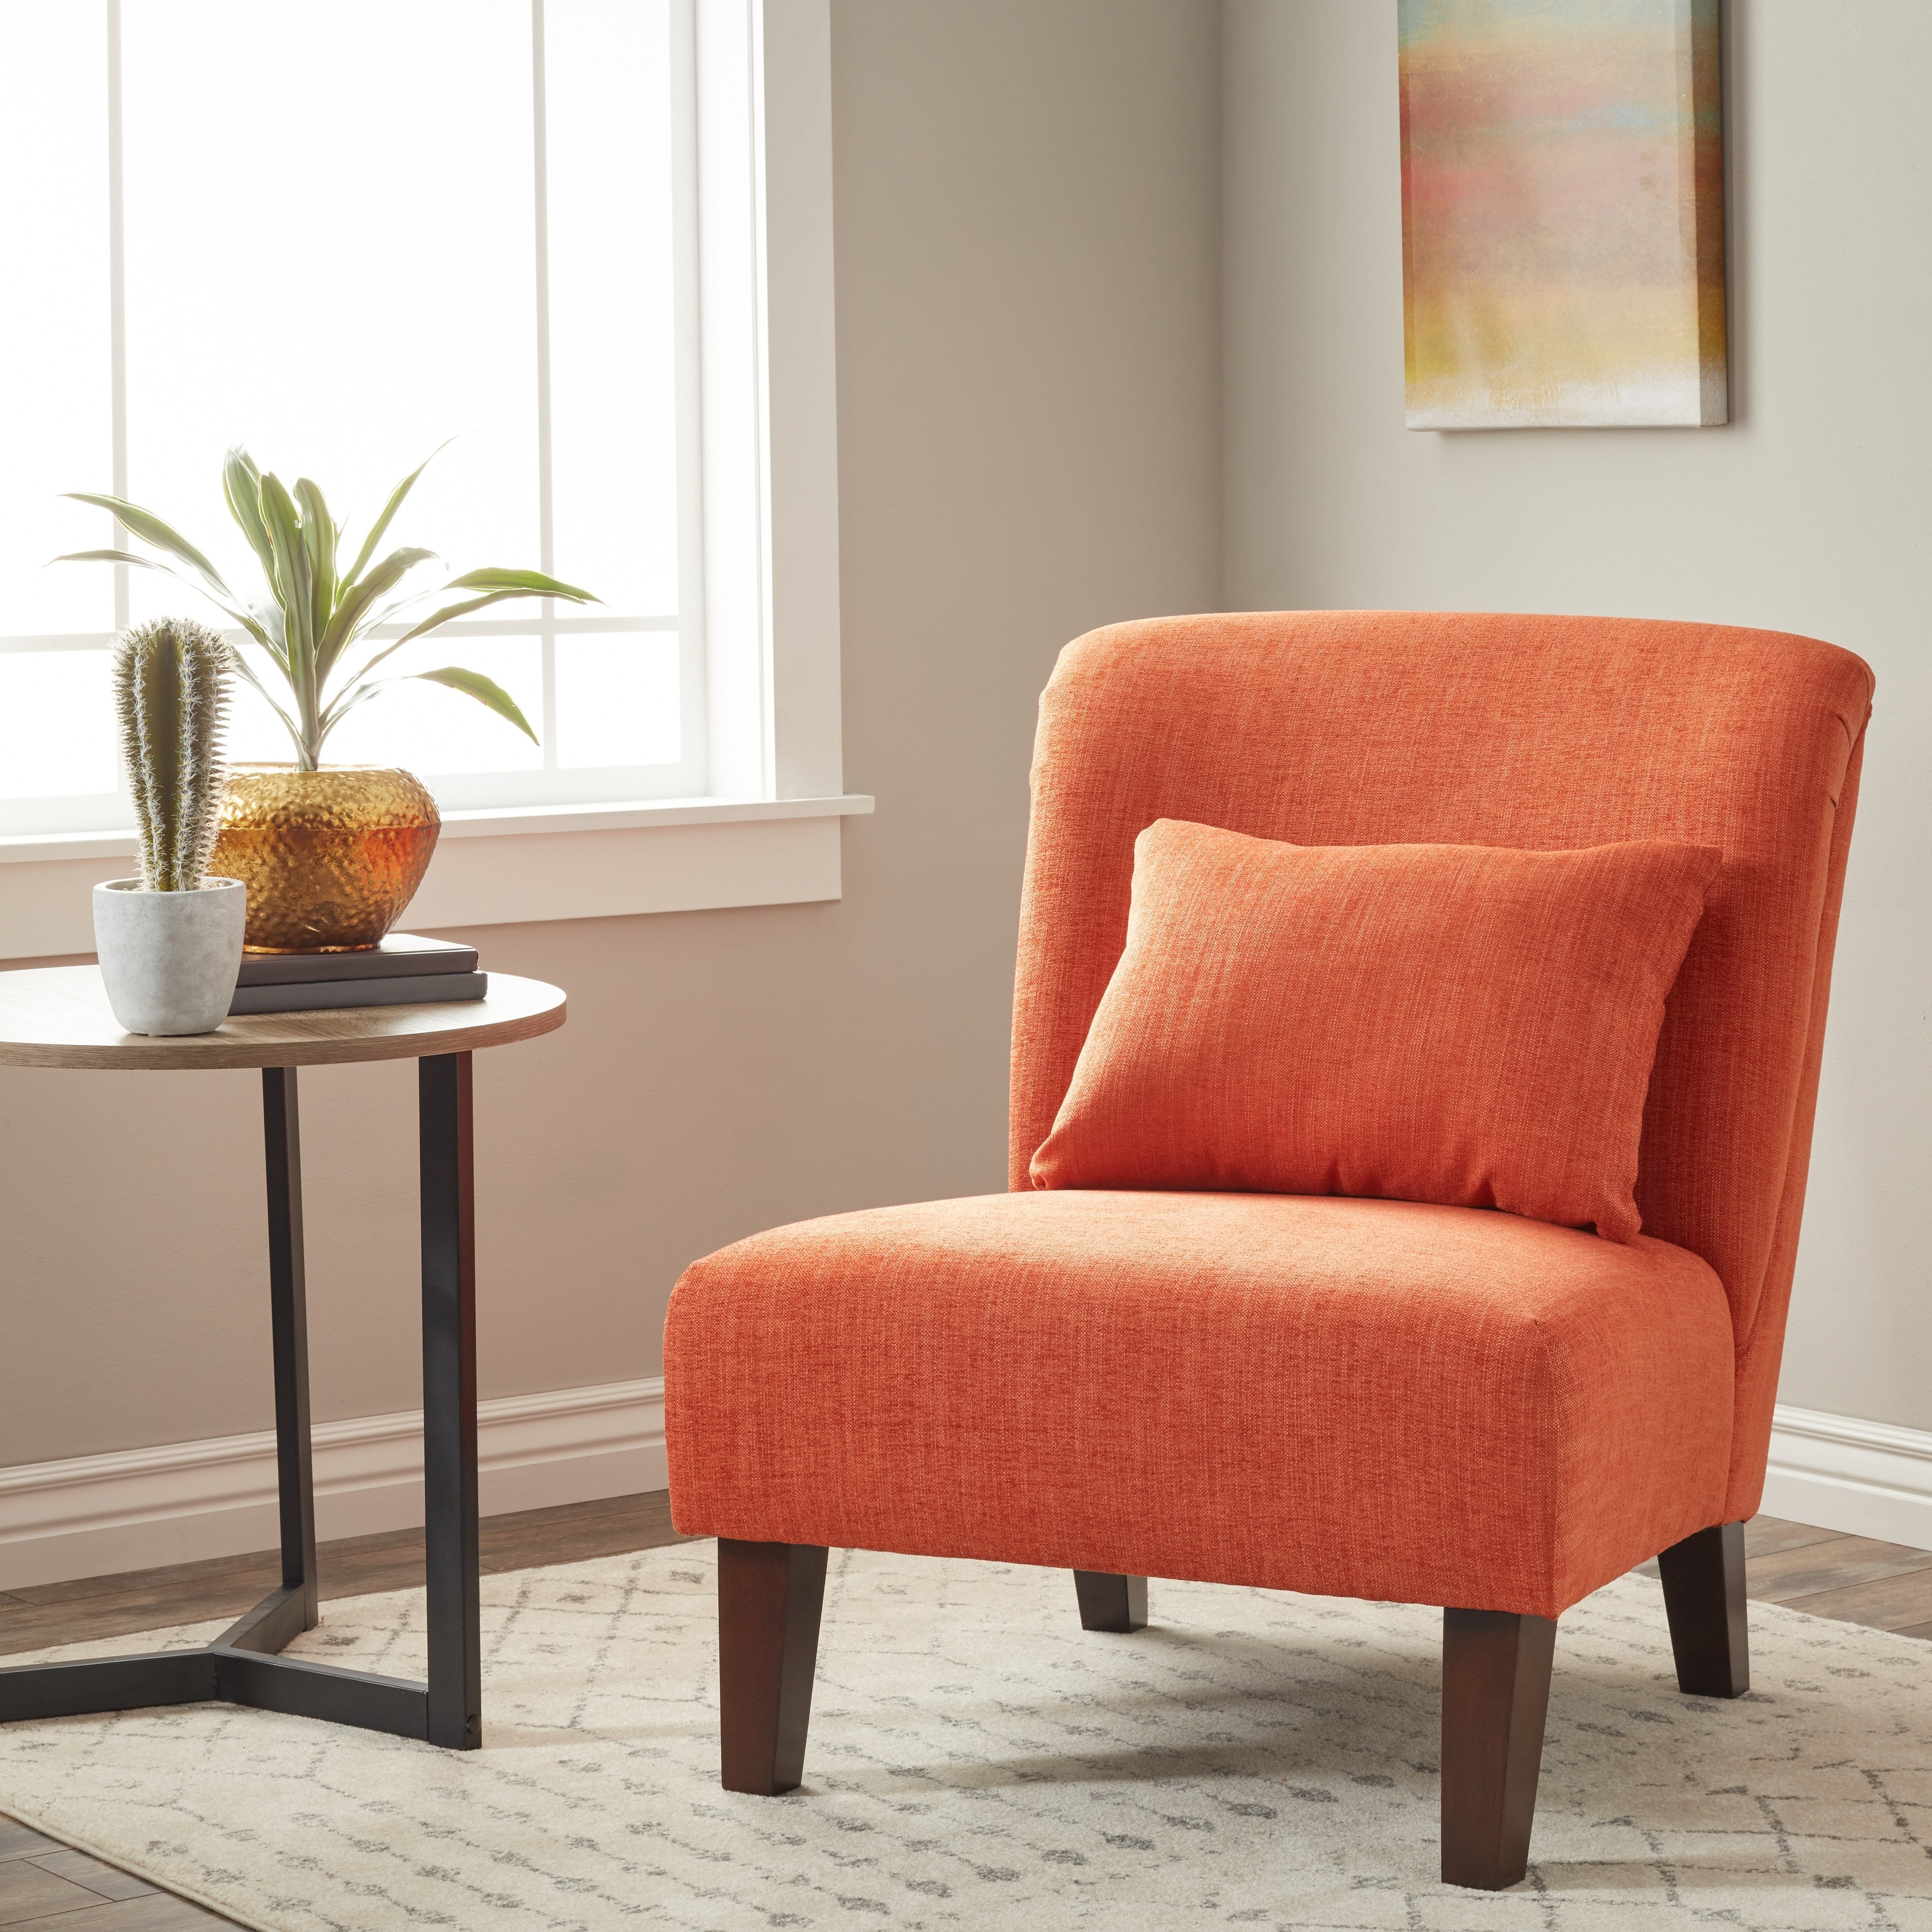 accent chairs under 50 dollars carl hansen wishbone chair buy living room online at overstock our best